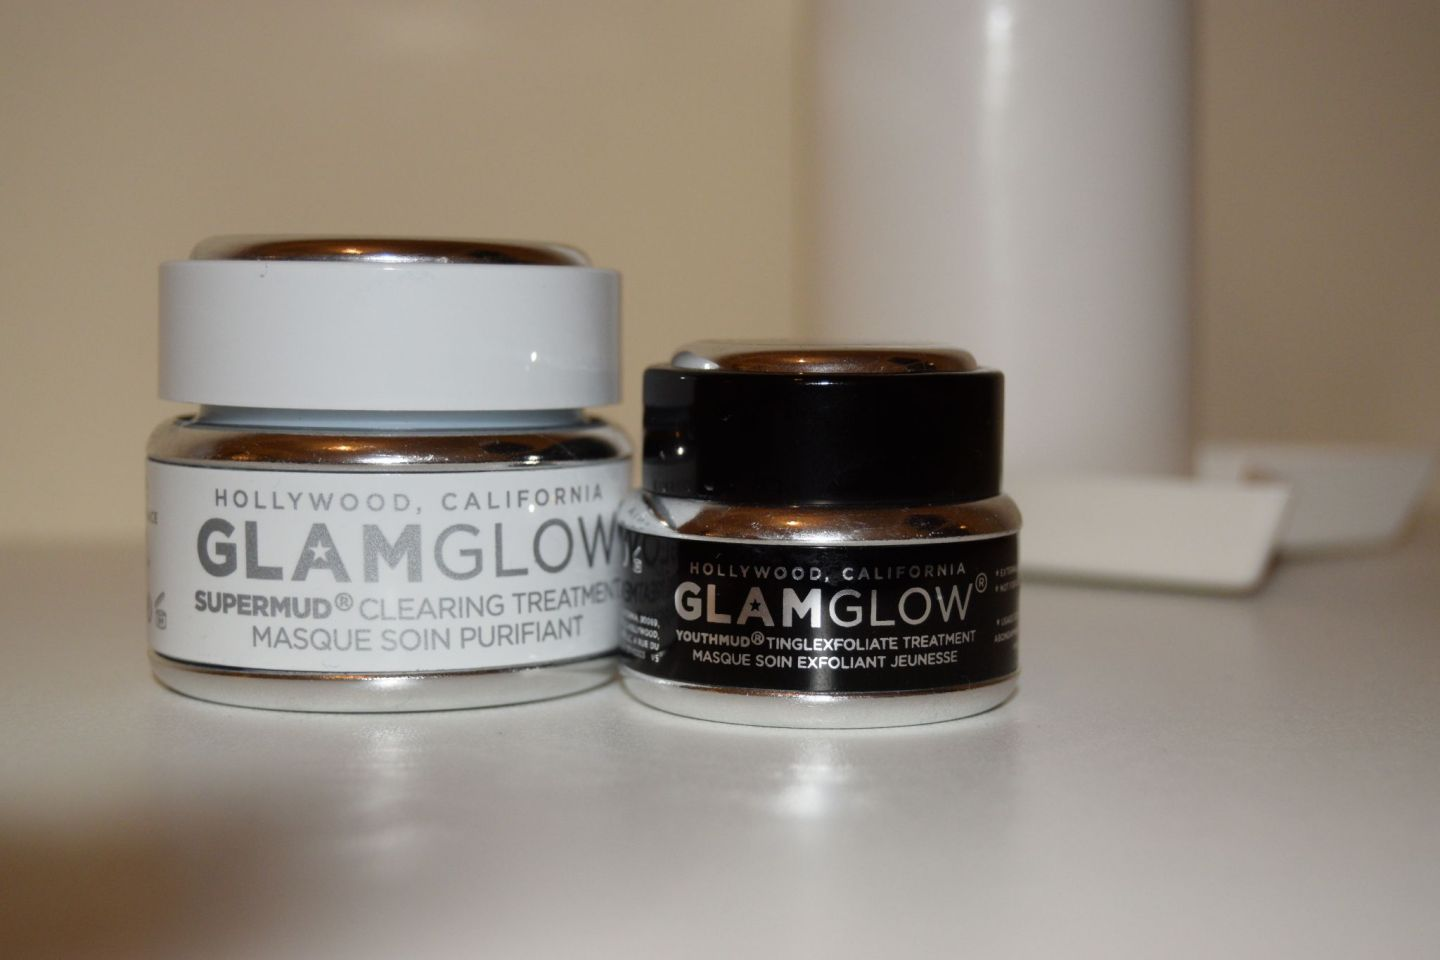 Glam Glow: Get the gift of GLOW